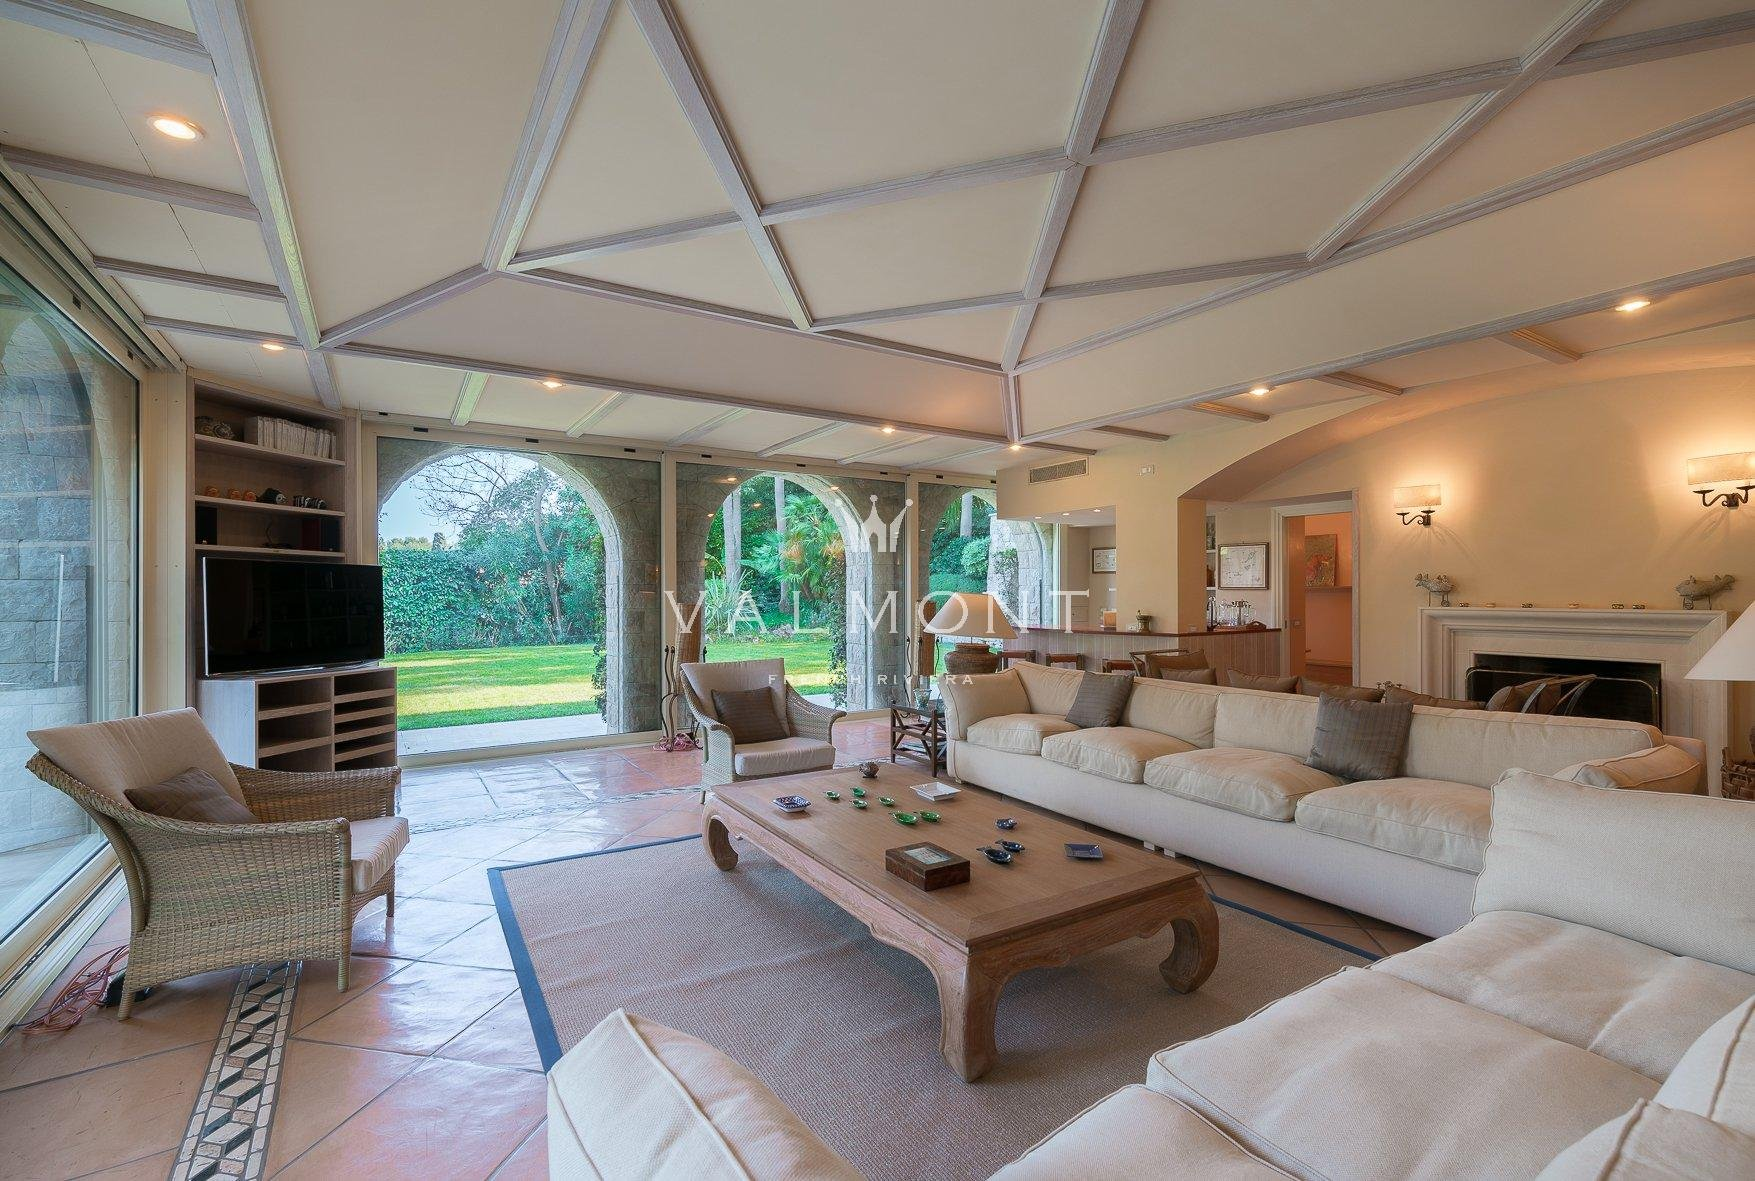 BEAUTIFUL PROPERTY IN THE HEART OF CAP FERRAT